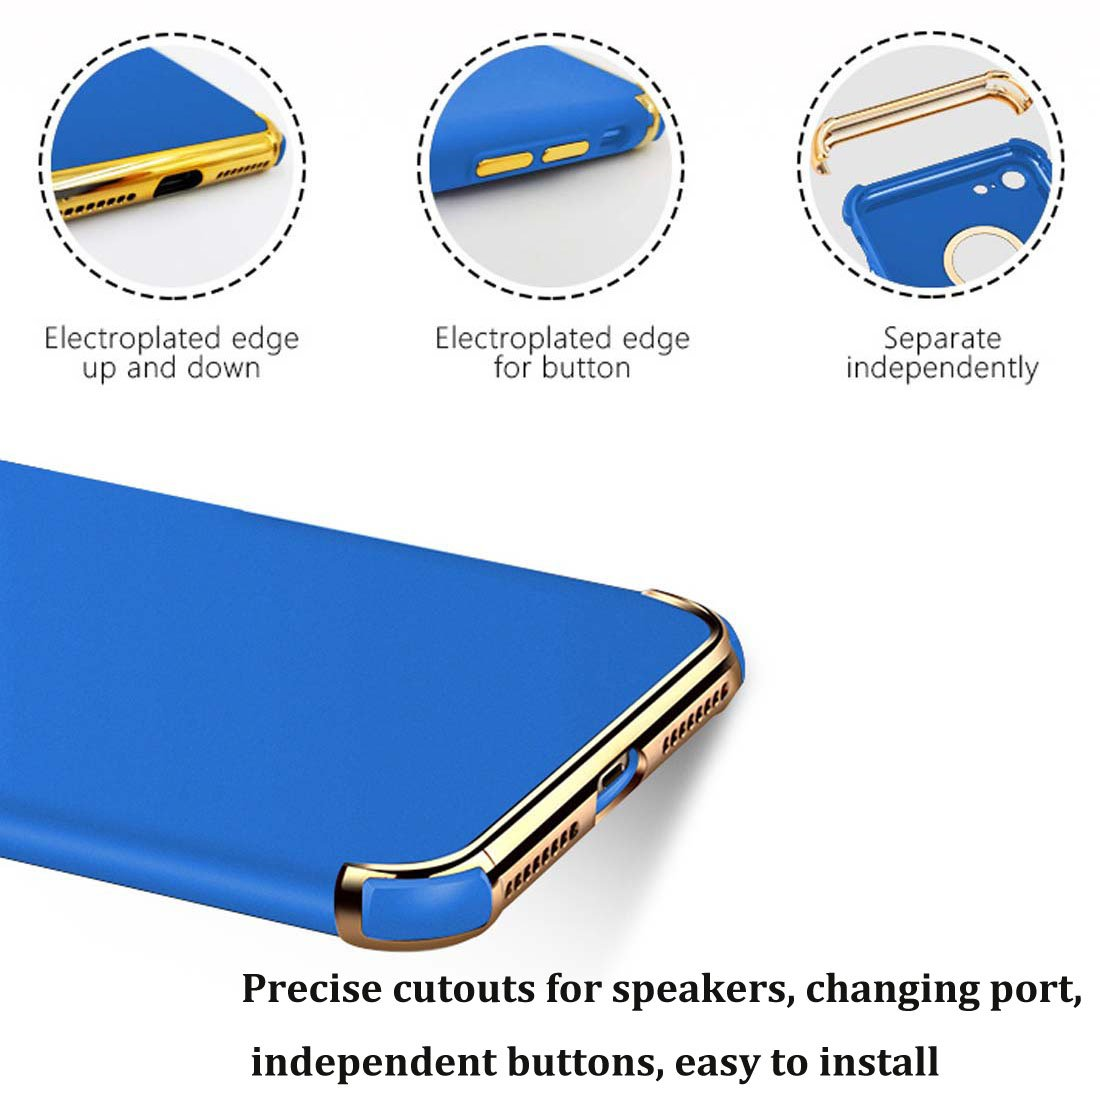 3 in 1 Electroplated Shockproof Elegant Phone Case Compatible with iPhone XR red Tverghvad iPhone XR Case 6.1 inch Ultra Thin Flexible Soft iPhone XR Slim Case